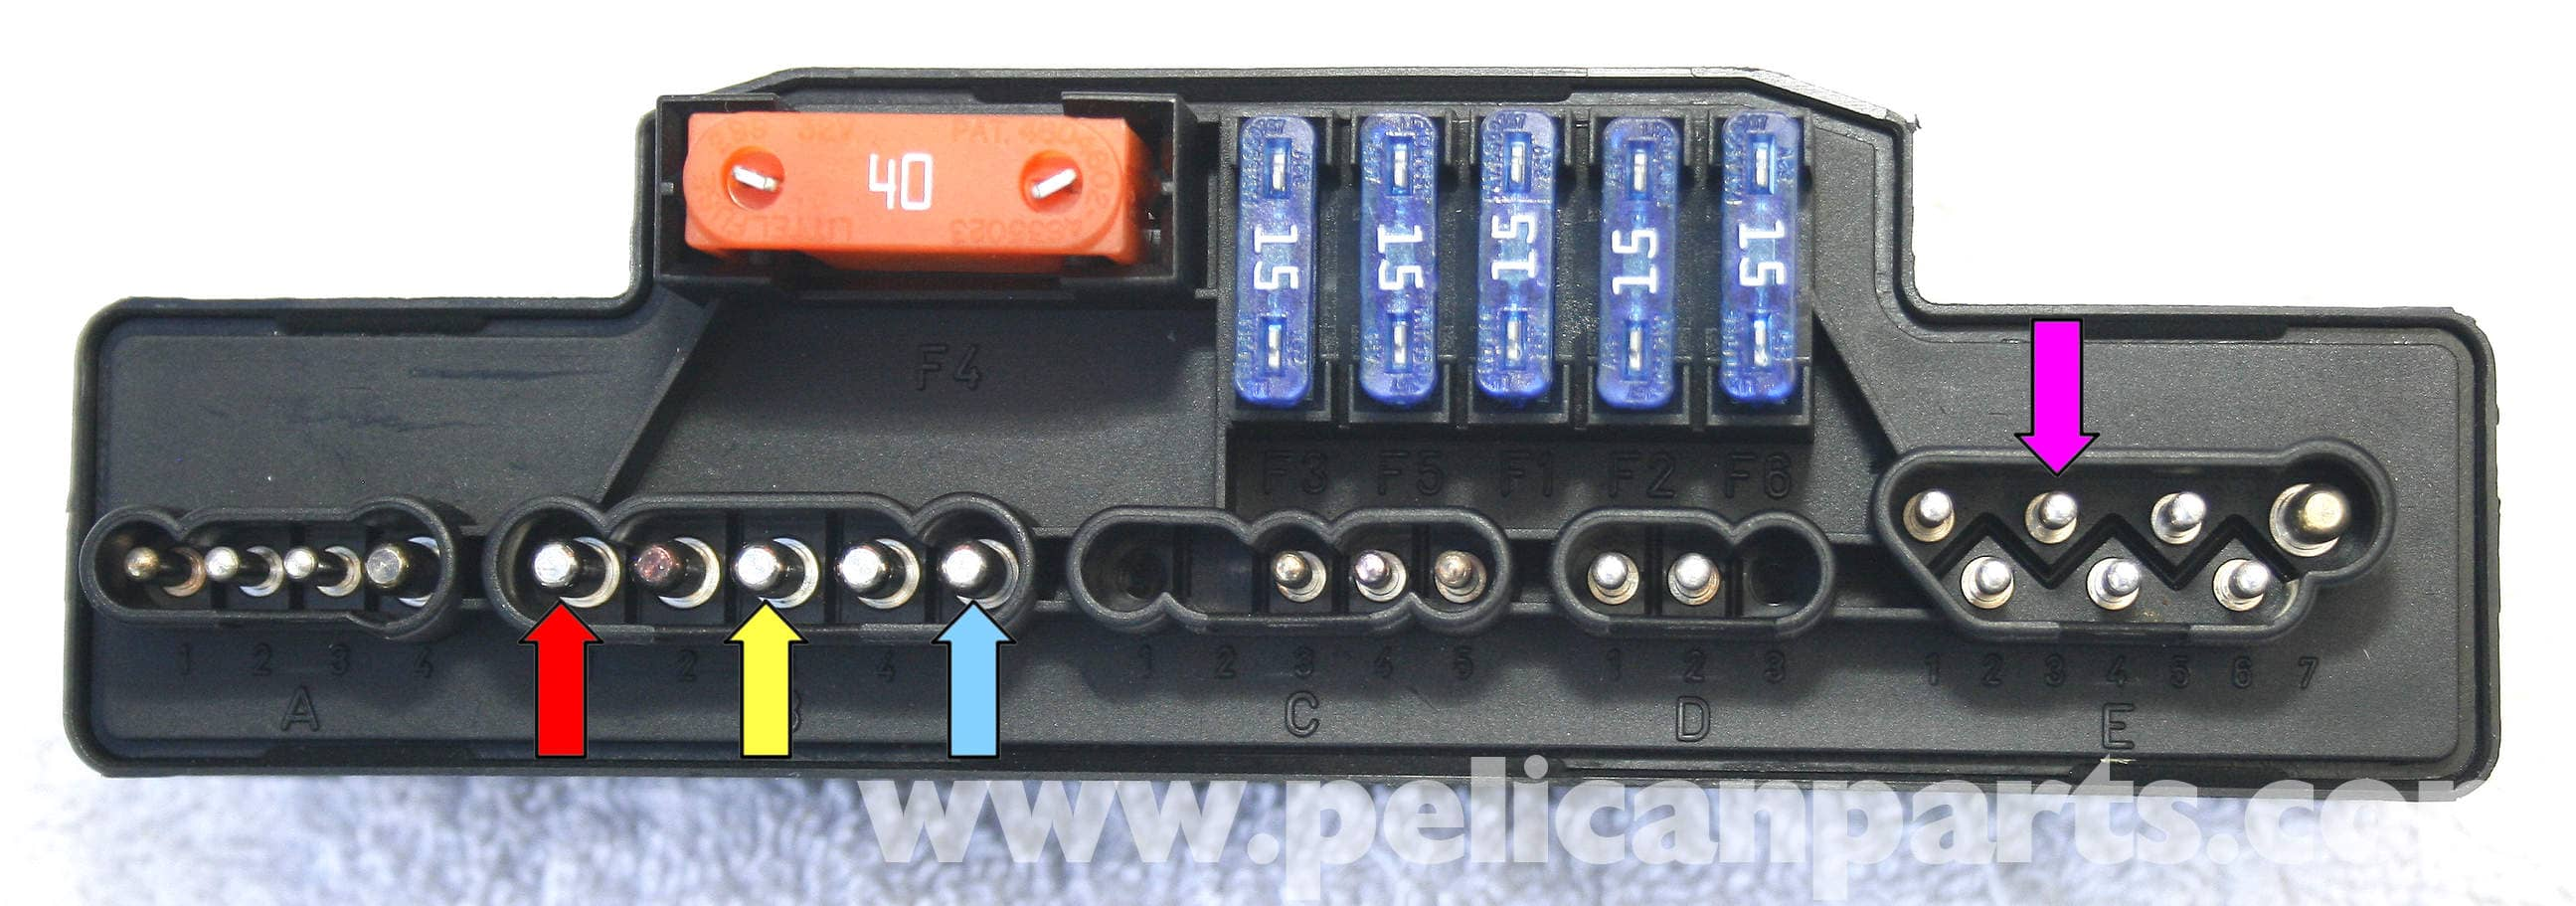 Mercedes Benz Slk 230 Wiring Diagram Wire Center Pr4401 1watt Led Drivercircuitdiagram K40 Overload Protection Relay Repair 1998 Rh Pelicanparts Com 95 C280 Radio